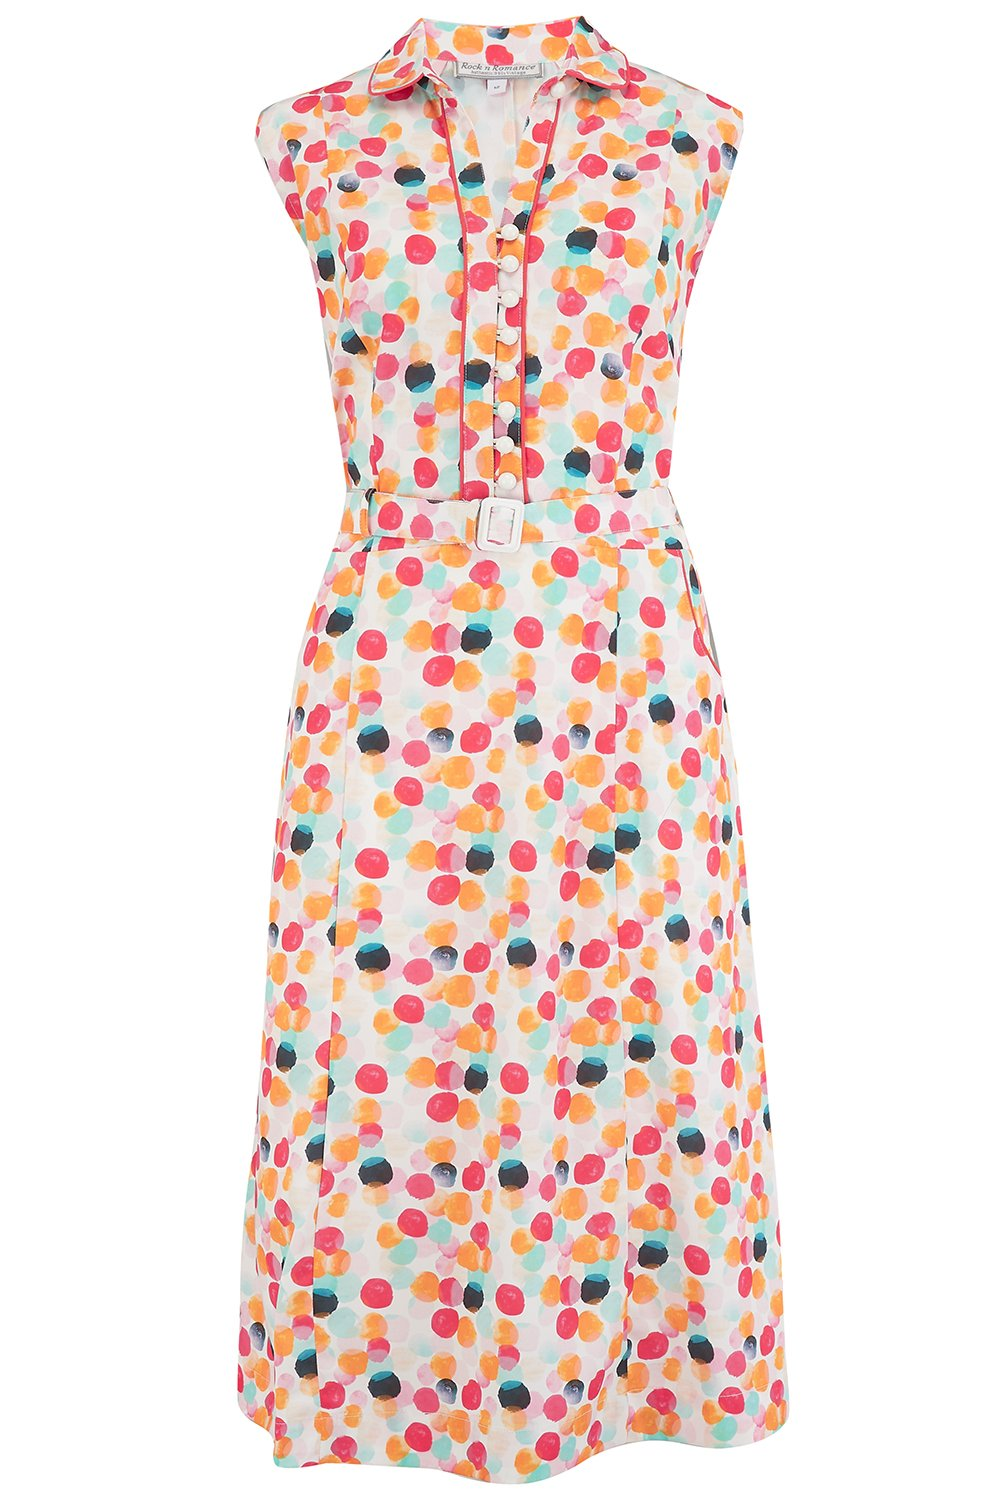 1950s Dresses, 50s Dresses | 1950s Style Dresses Margot Dress in Bubblegum Print Perfect 1950s Style £55.01 AT vintagedancer.com